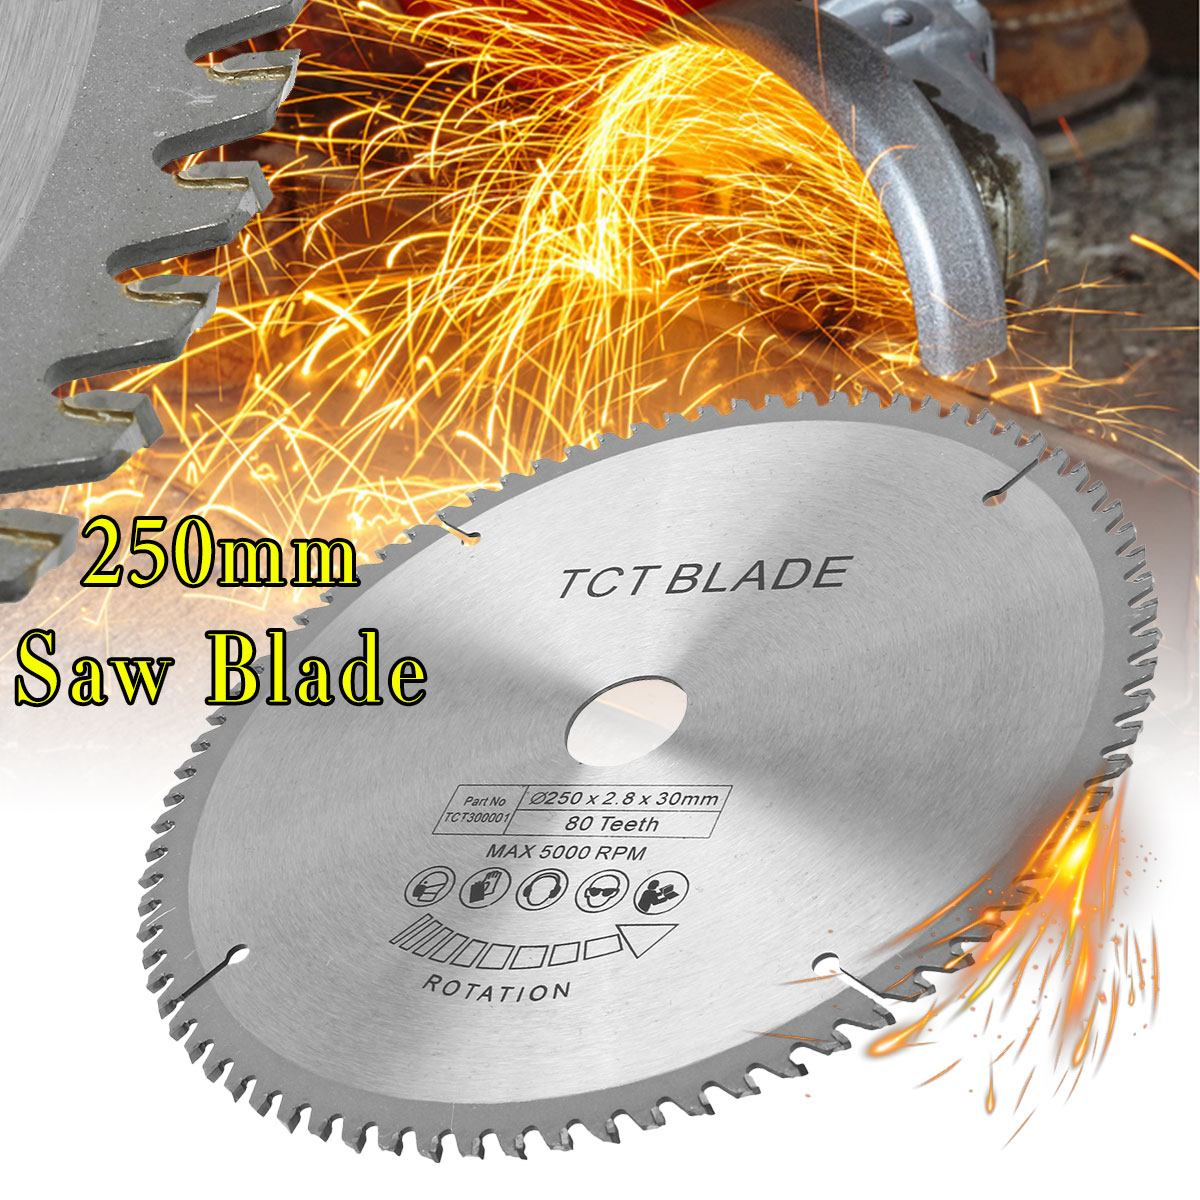 250mm 80 Teeth Circular Saw Blade High-speed Steel With 3pcs Reduction Rings Fits For Bosch, Makita, Festool & Others Brand